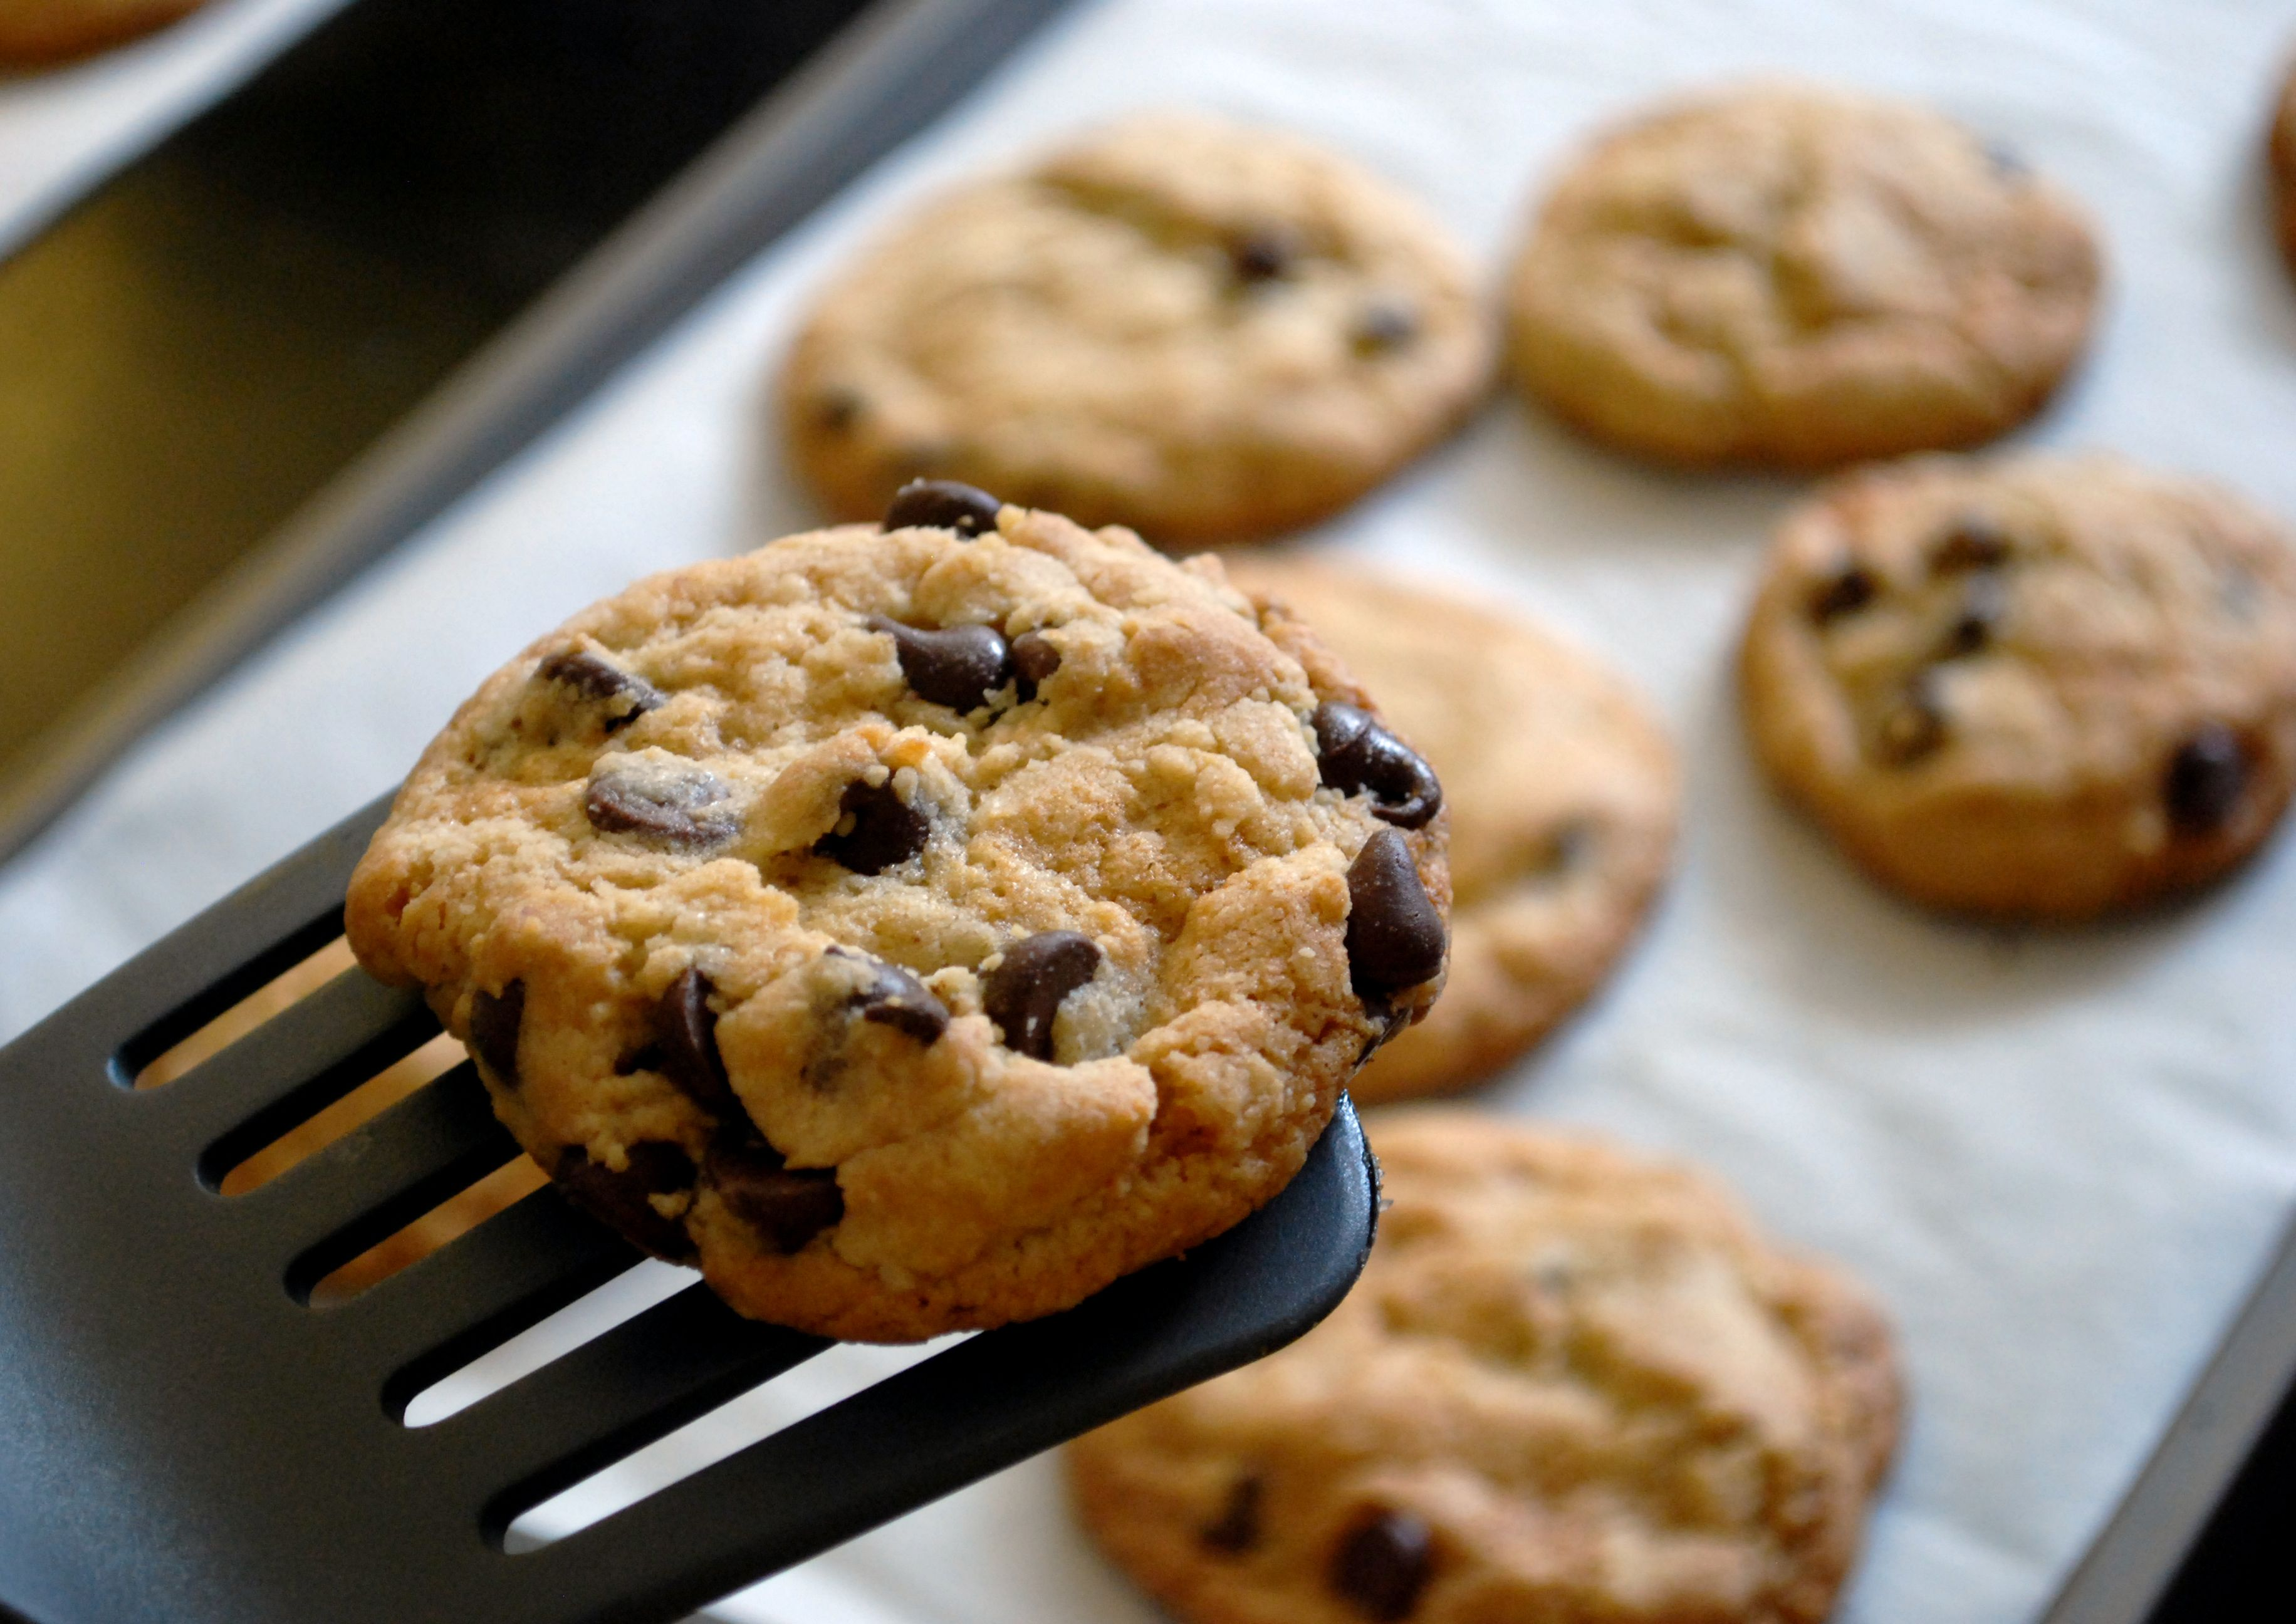 The Best Cookie Dough Brands For When You're Too Lazy to Bake From Scratch